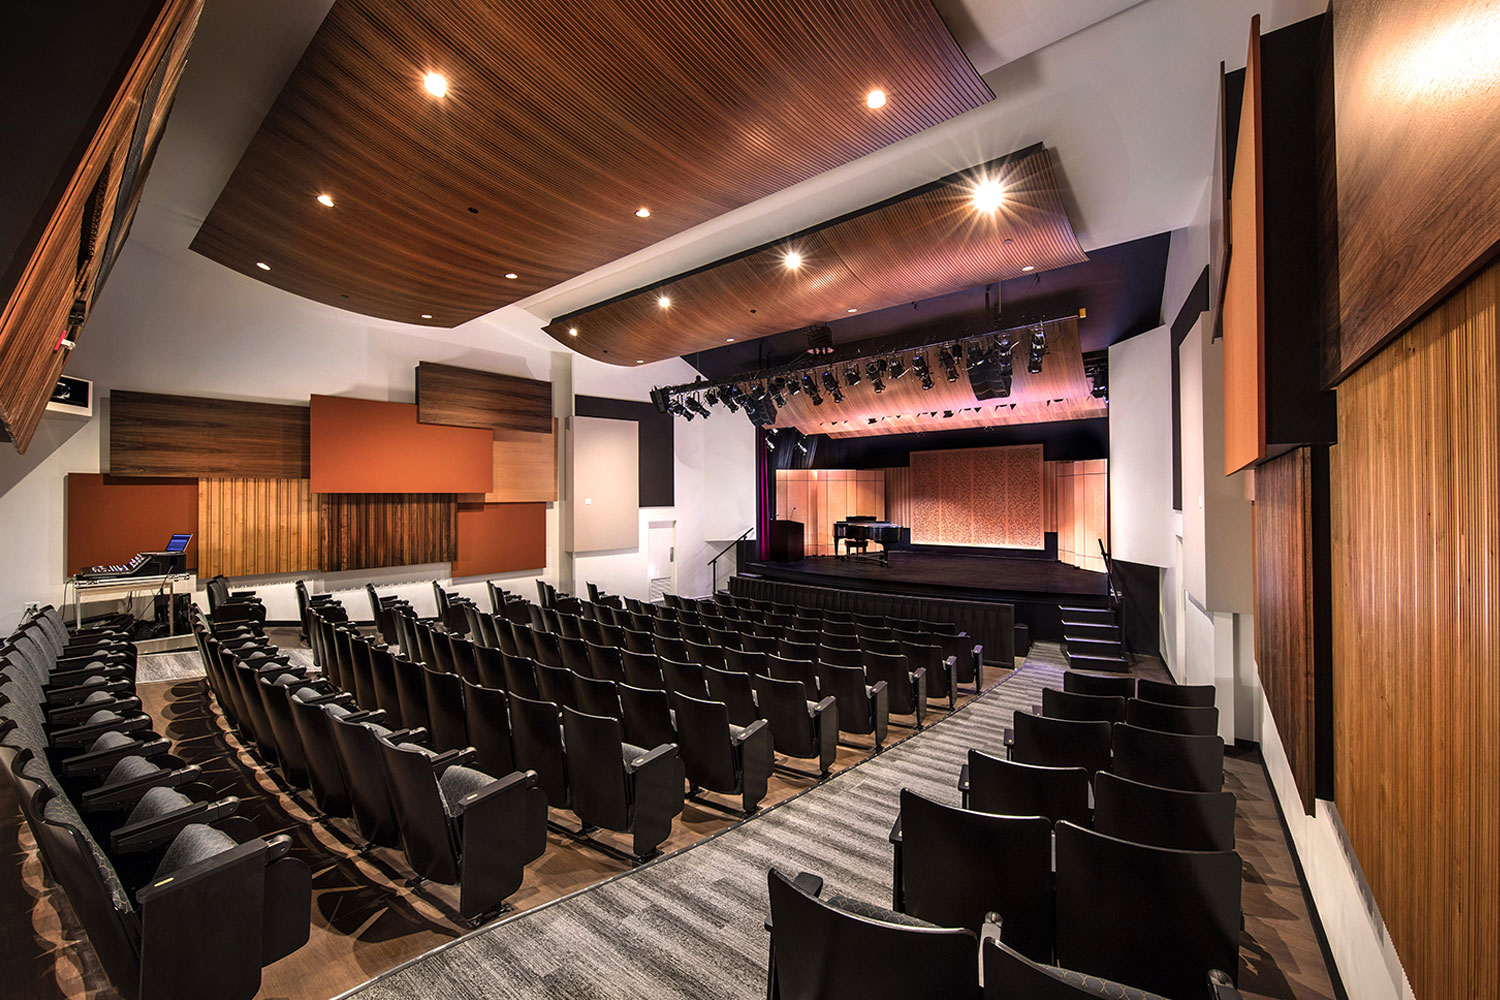 The Herb Alpert Foundation engaged WSDG to design the acoustics for a small on-campus live performance theater at the prestigious UCLA, with help of Lani Hall. Theater Side View, acoustic treatment.